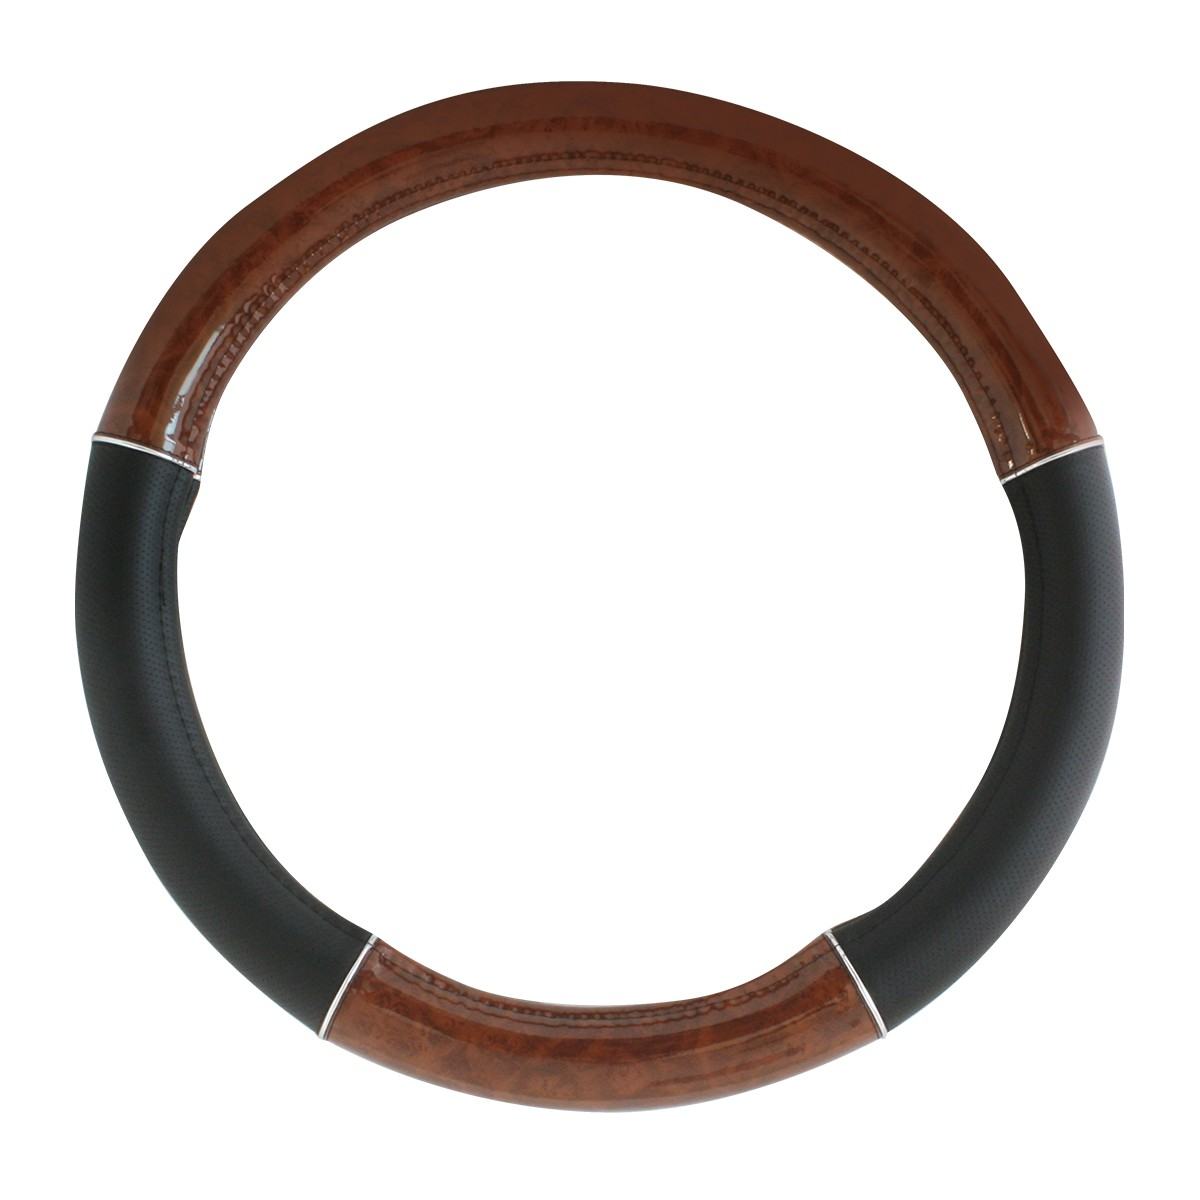 "54007 Heavy Duty 18"" Steering Wheel Covers in Deluxe Wood Grain Series"